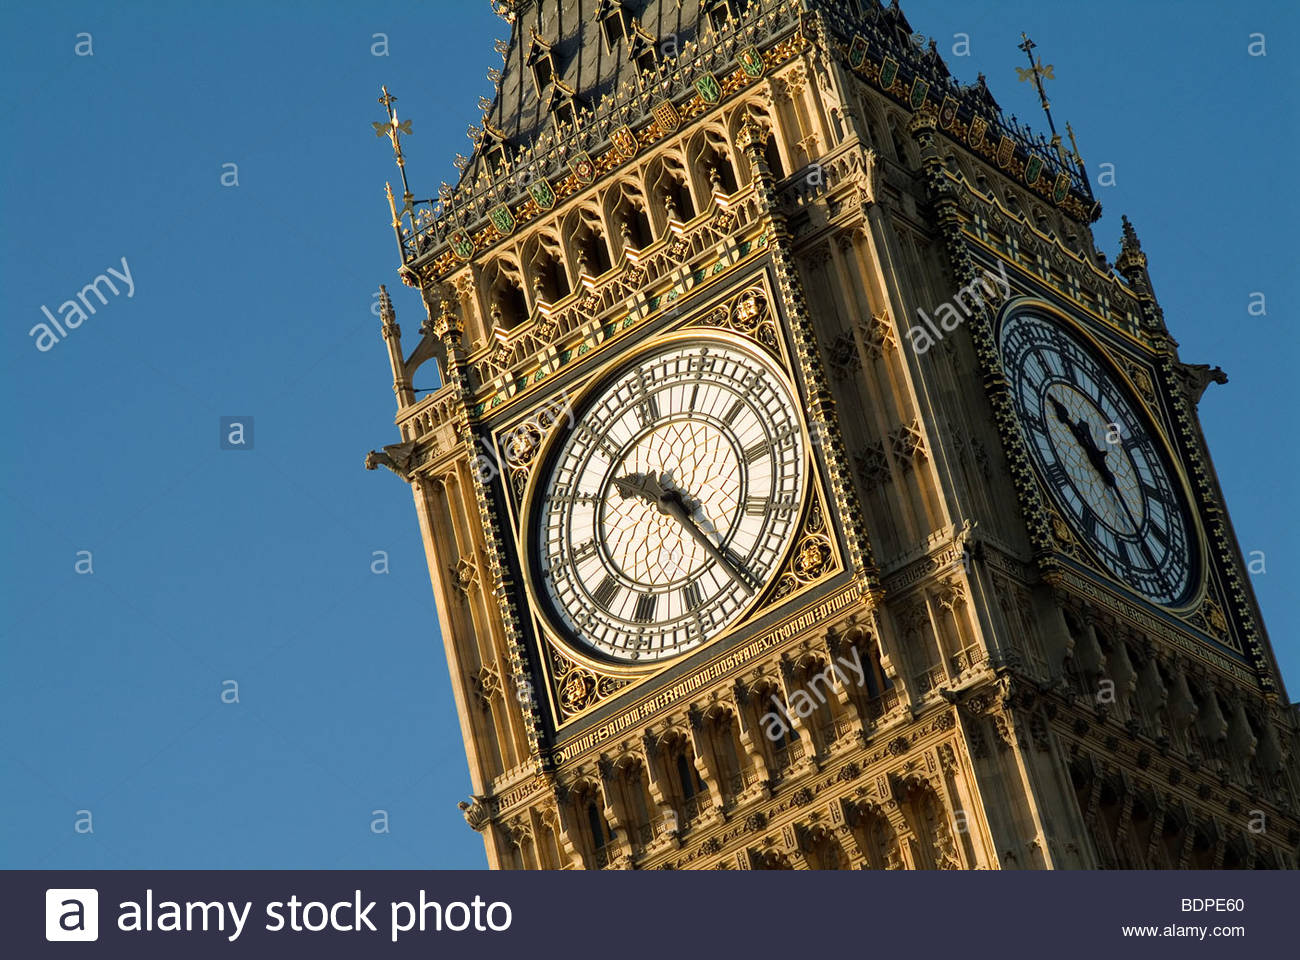 Clock Tower of Palace of Westminster (aka Big Ben). Built between 1858-59 by architect Charles Barry. London England - Stock Image